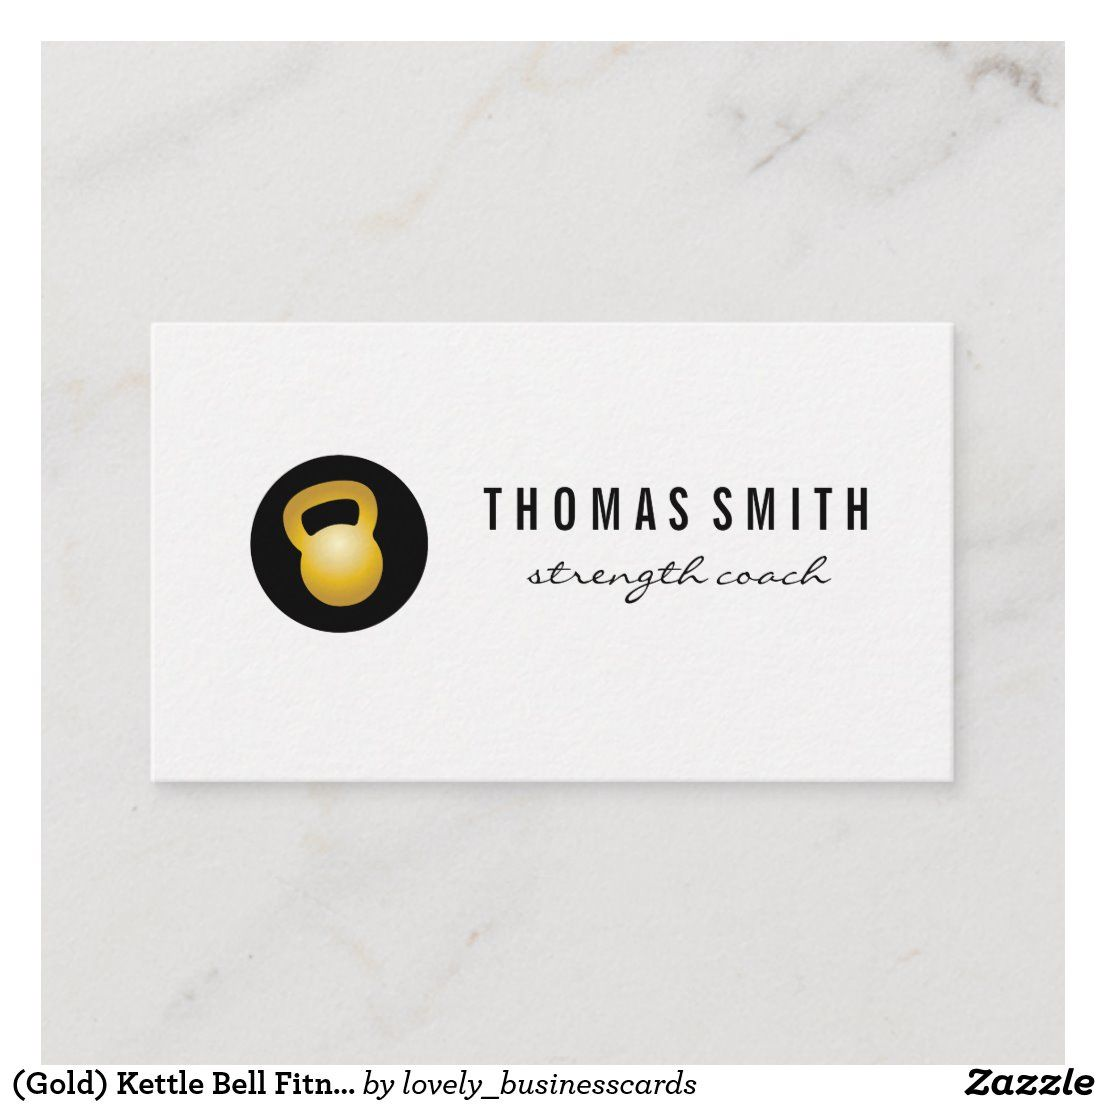 (Gold) Kettle Bell Fitness Trainer Business Card Zazzle